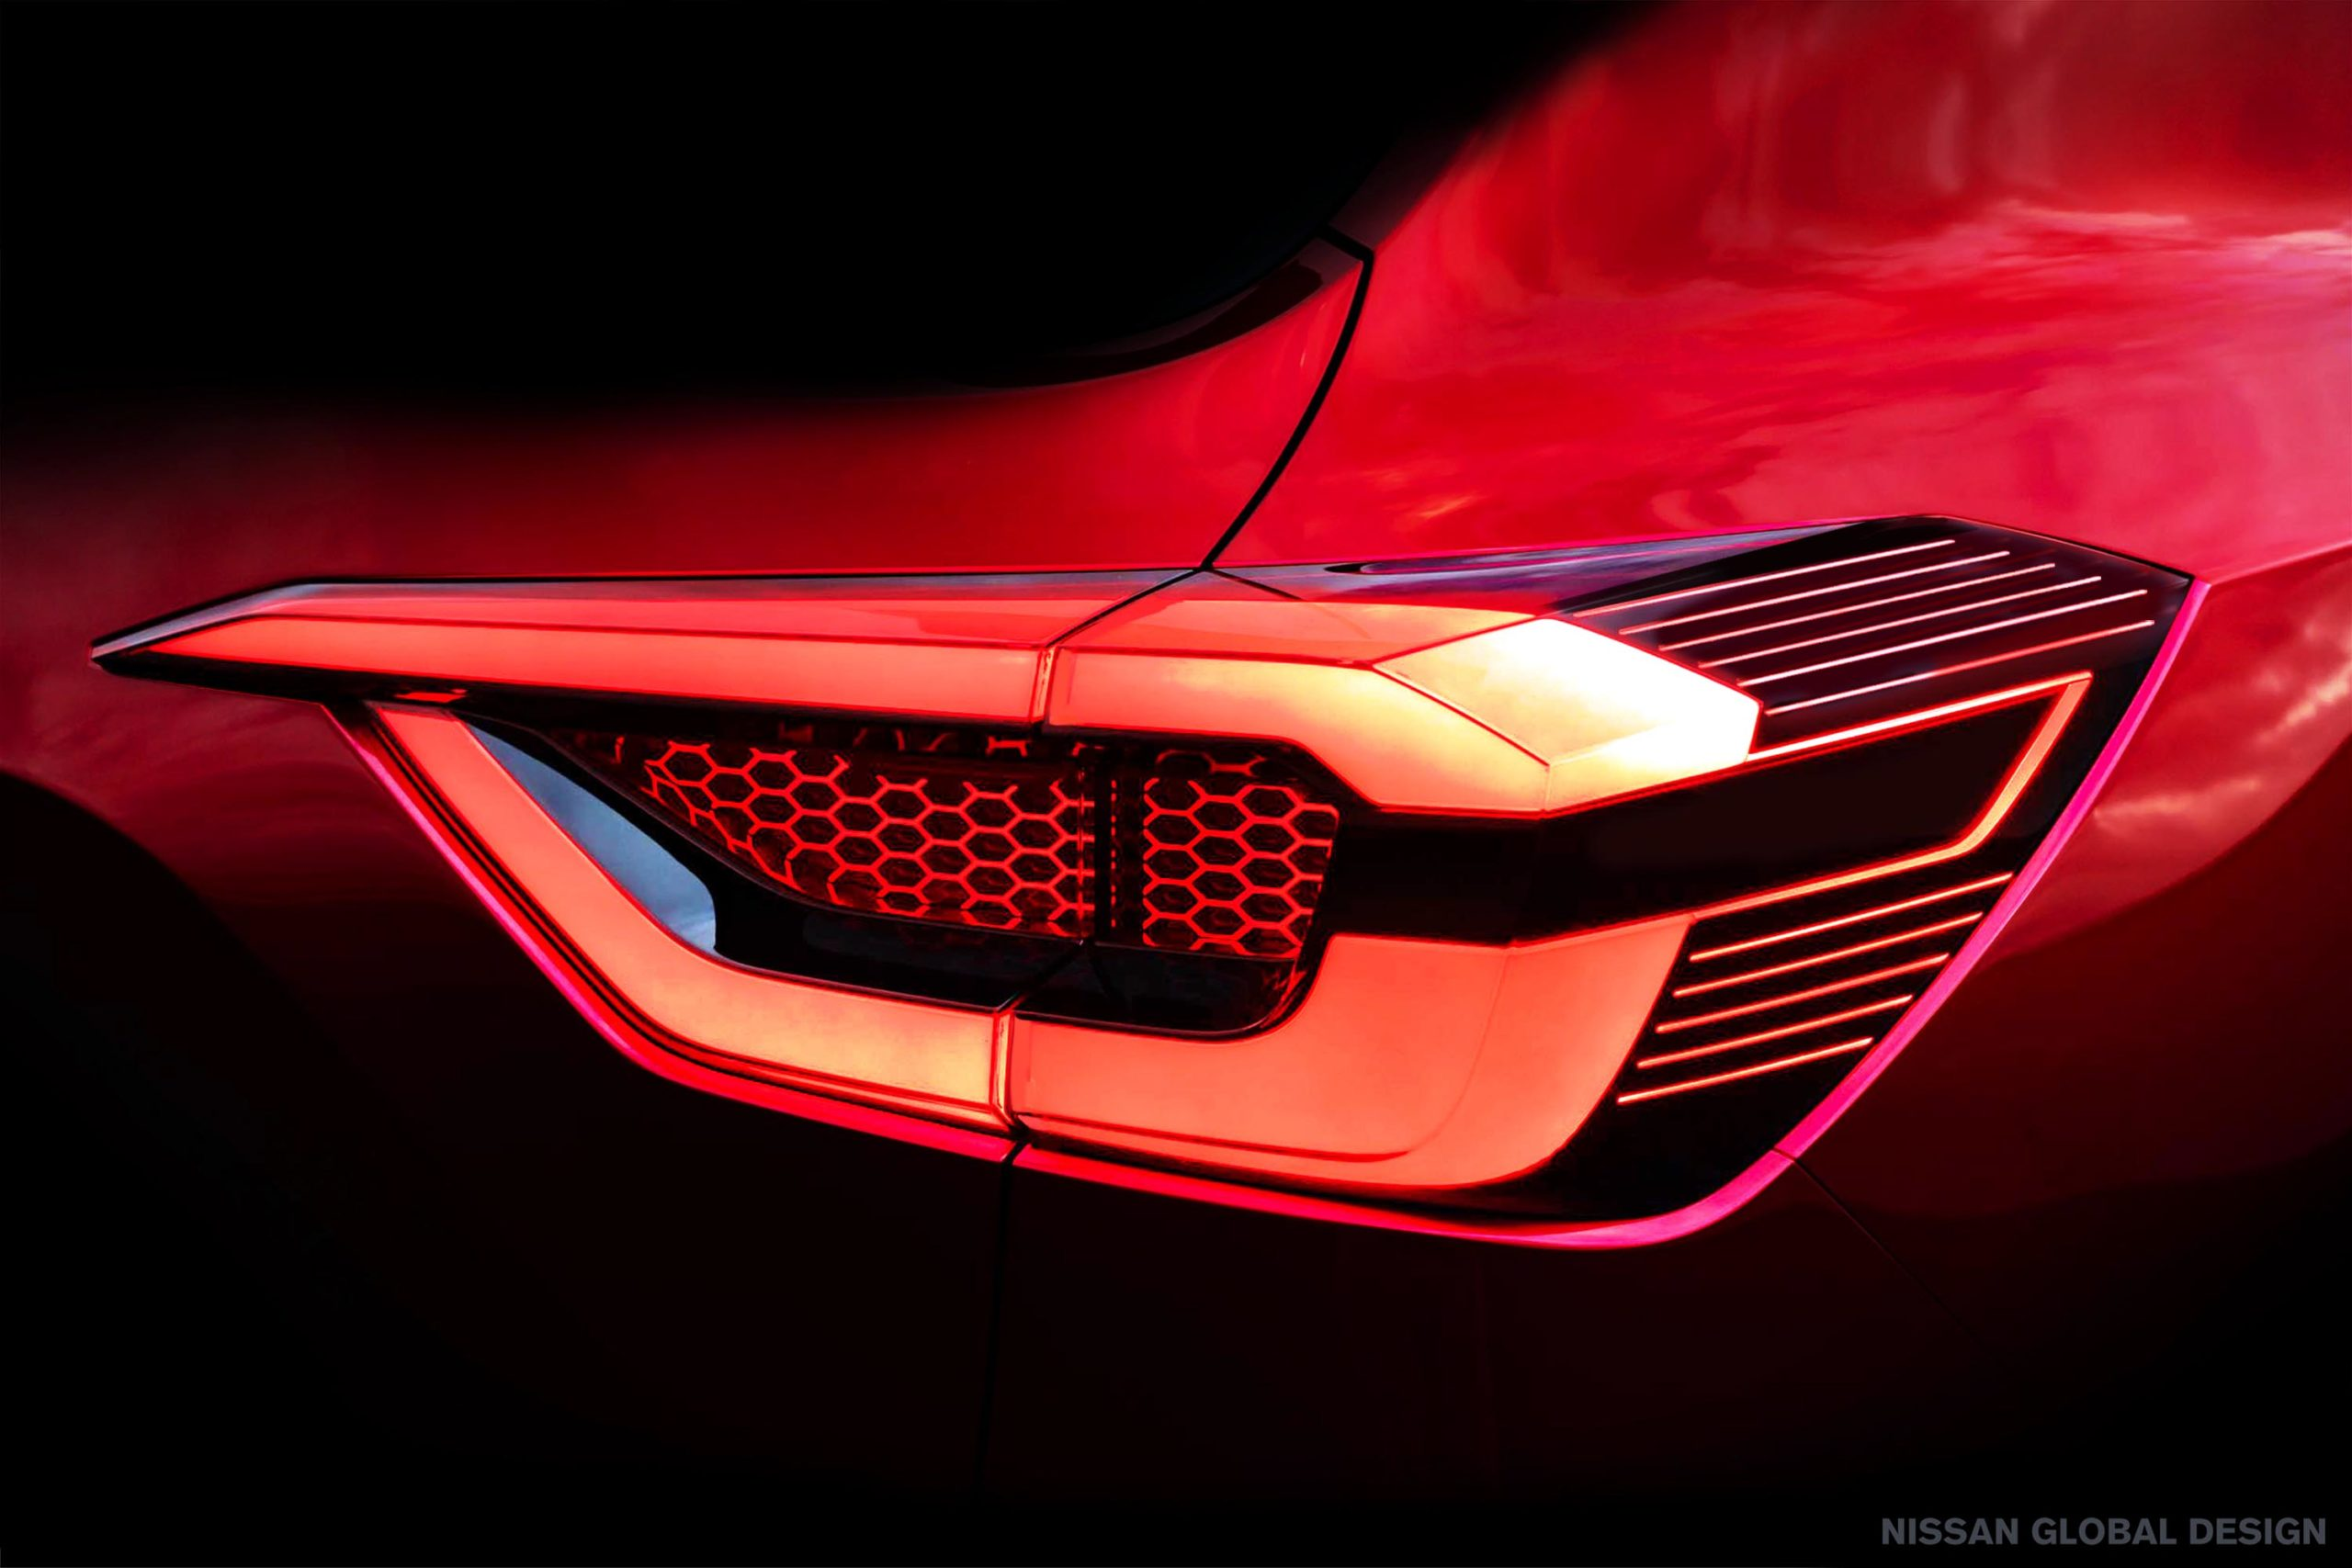 Nissan releases second glimpse of its new SU